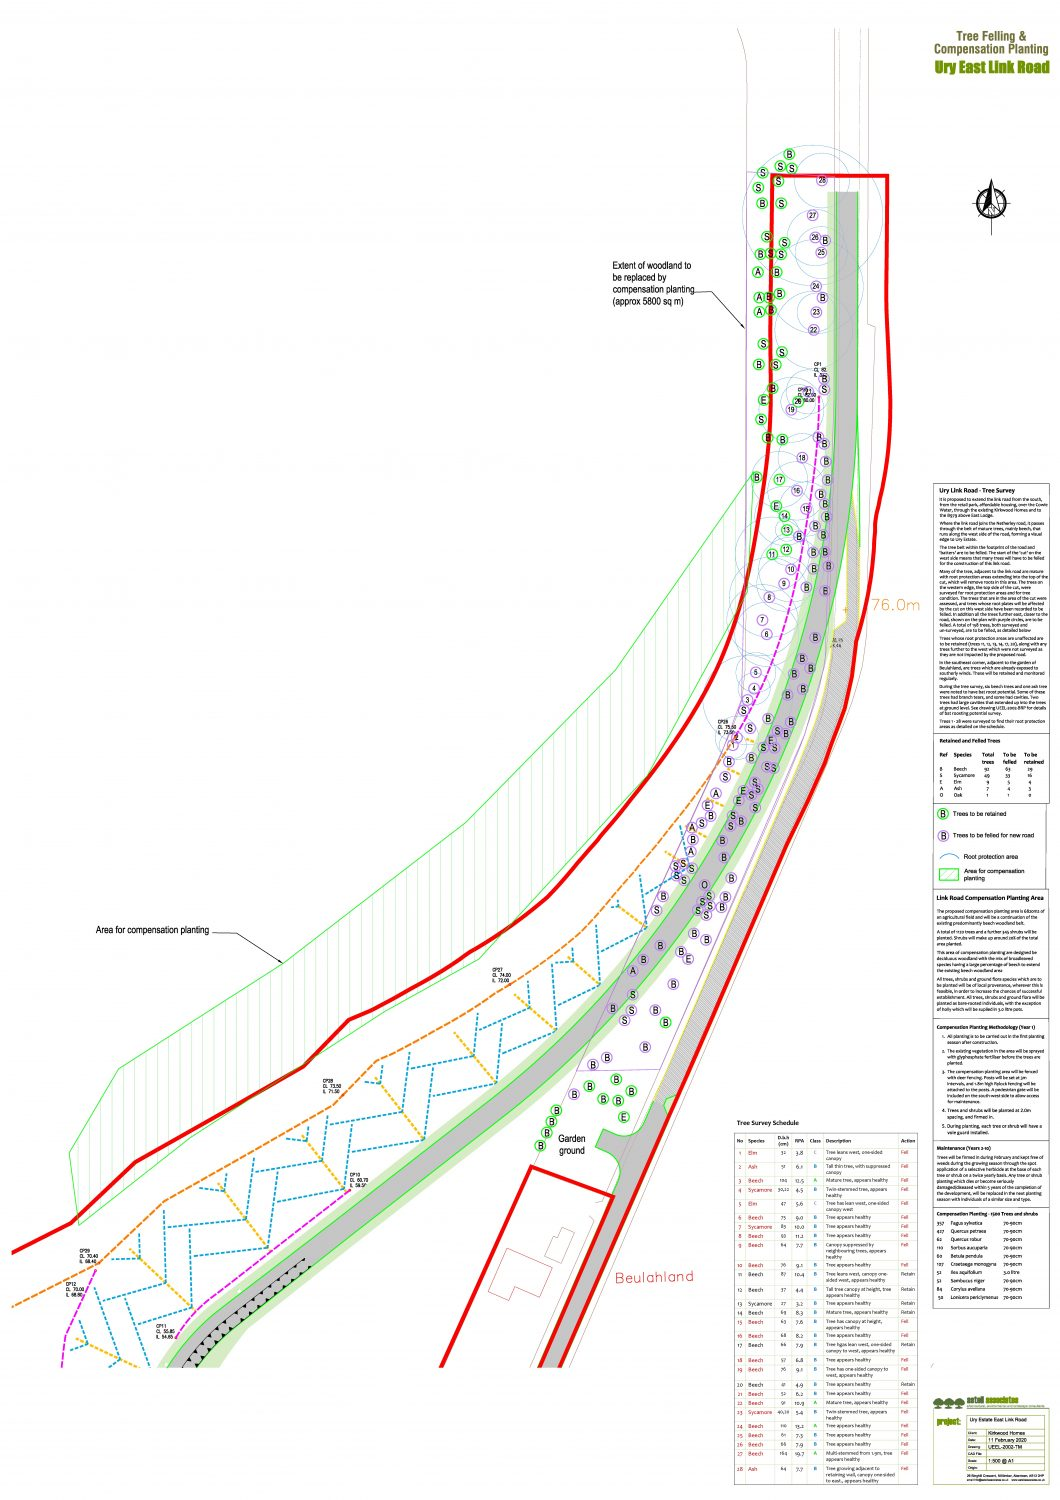 Plan showing trees to be felled